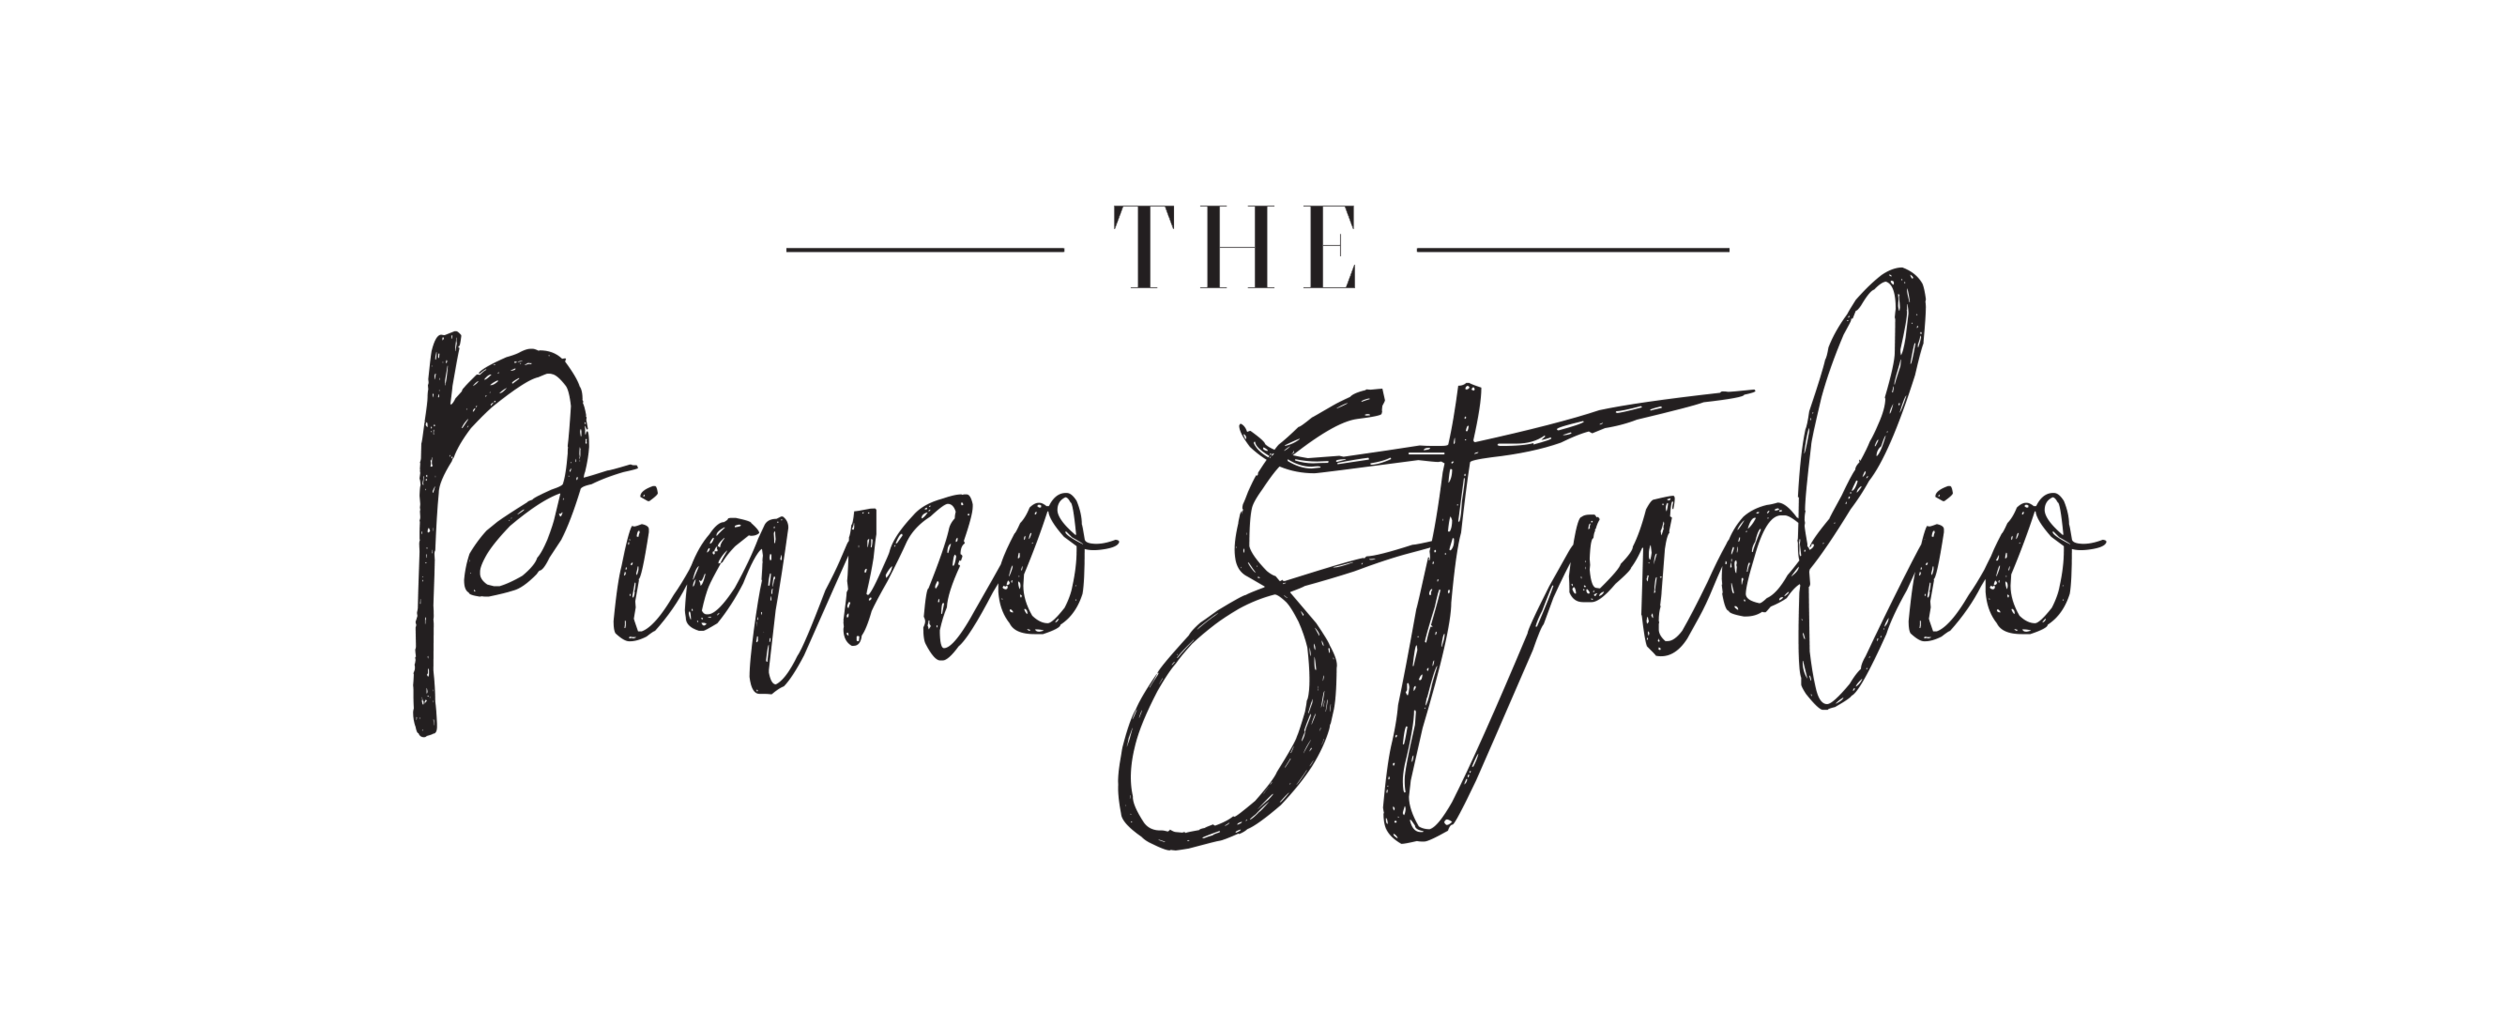 ThePianoLogo1.png